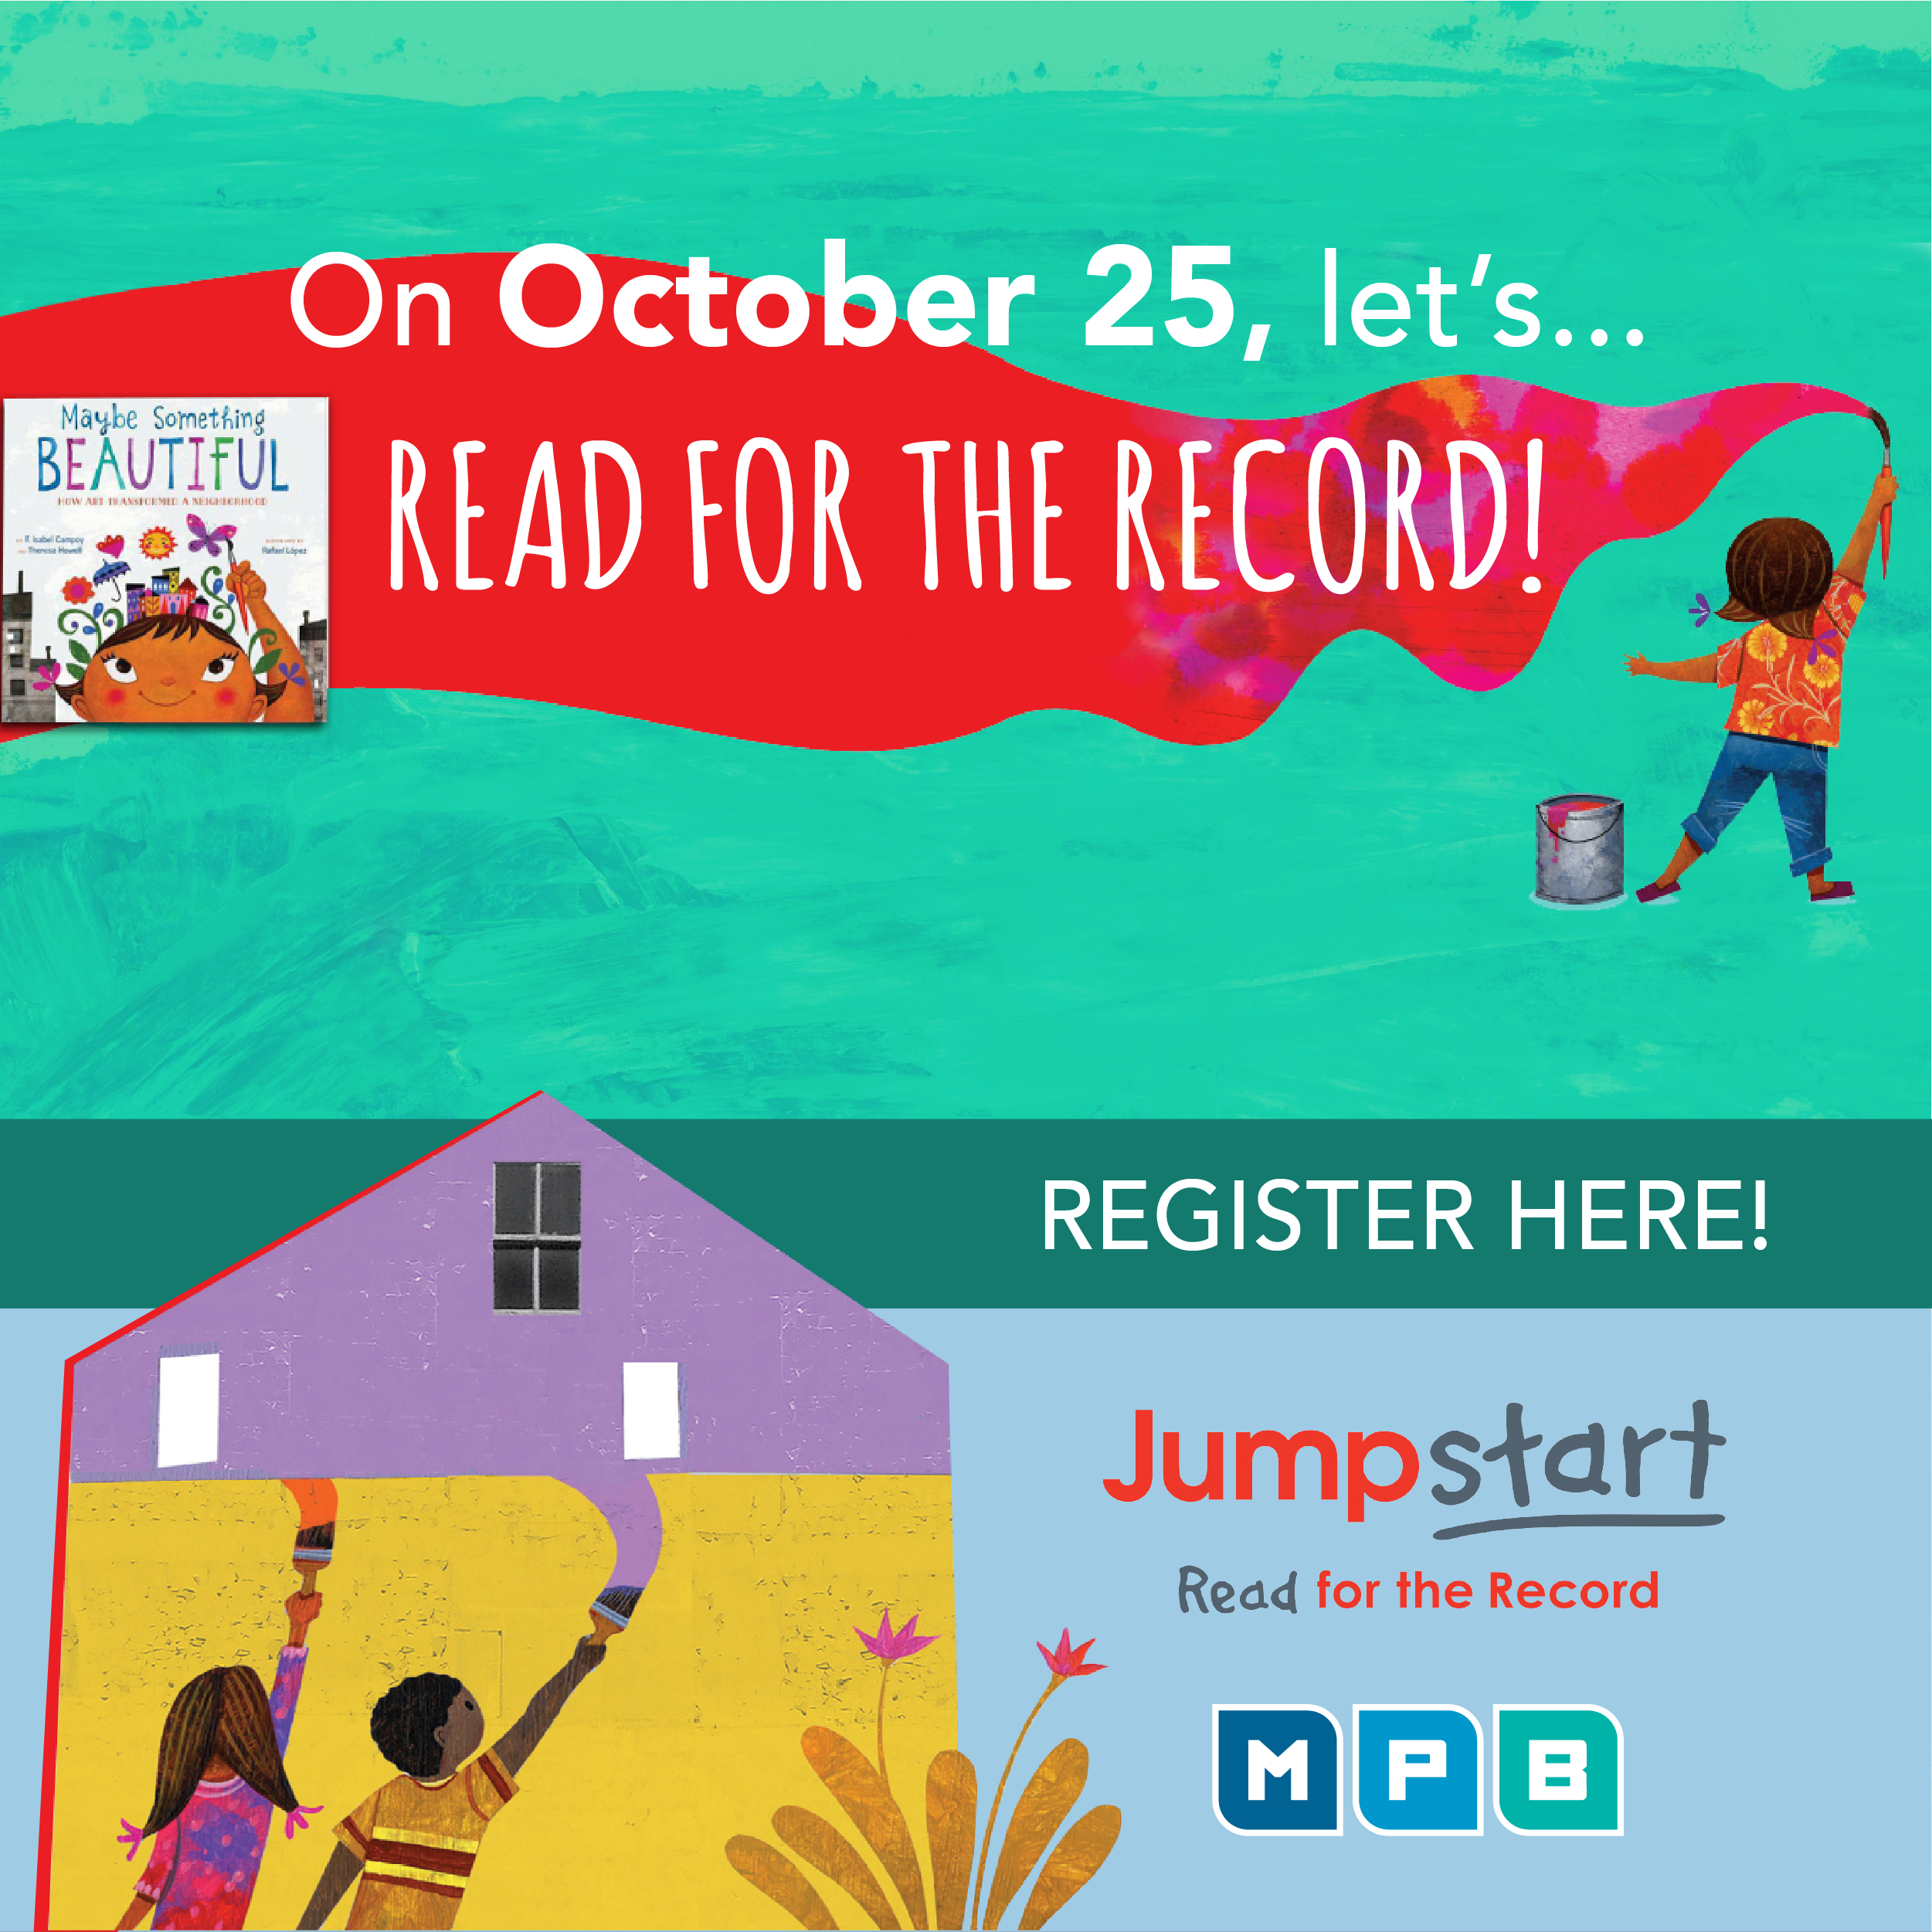 Register to read for the record with MPB on October 25!